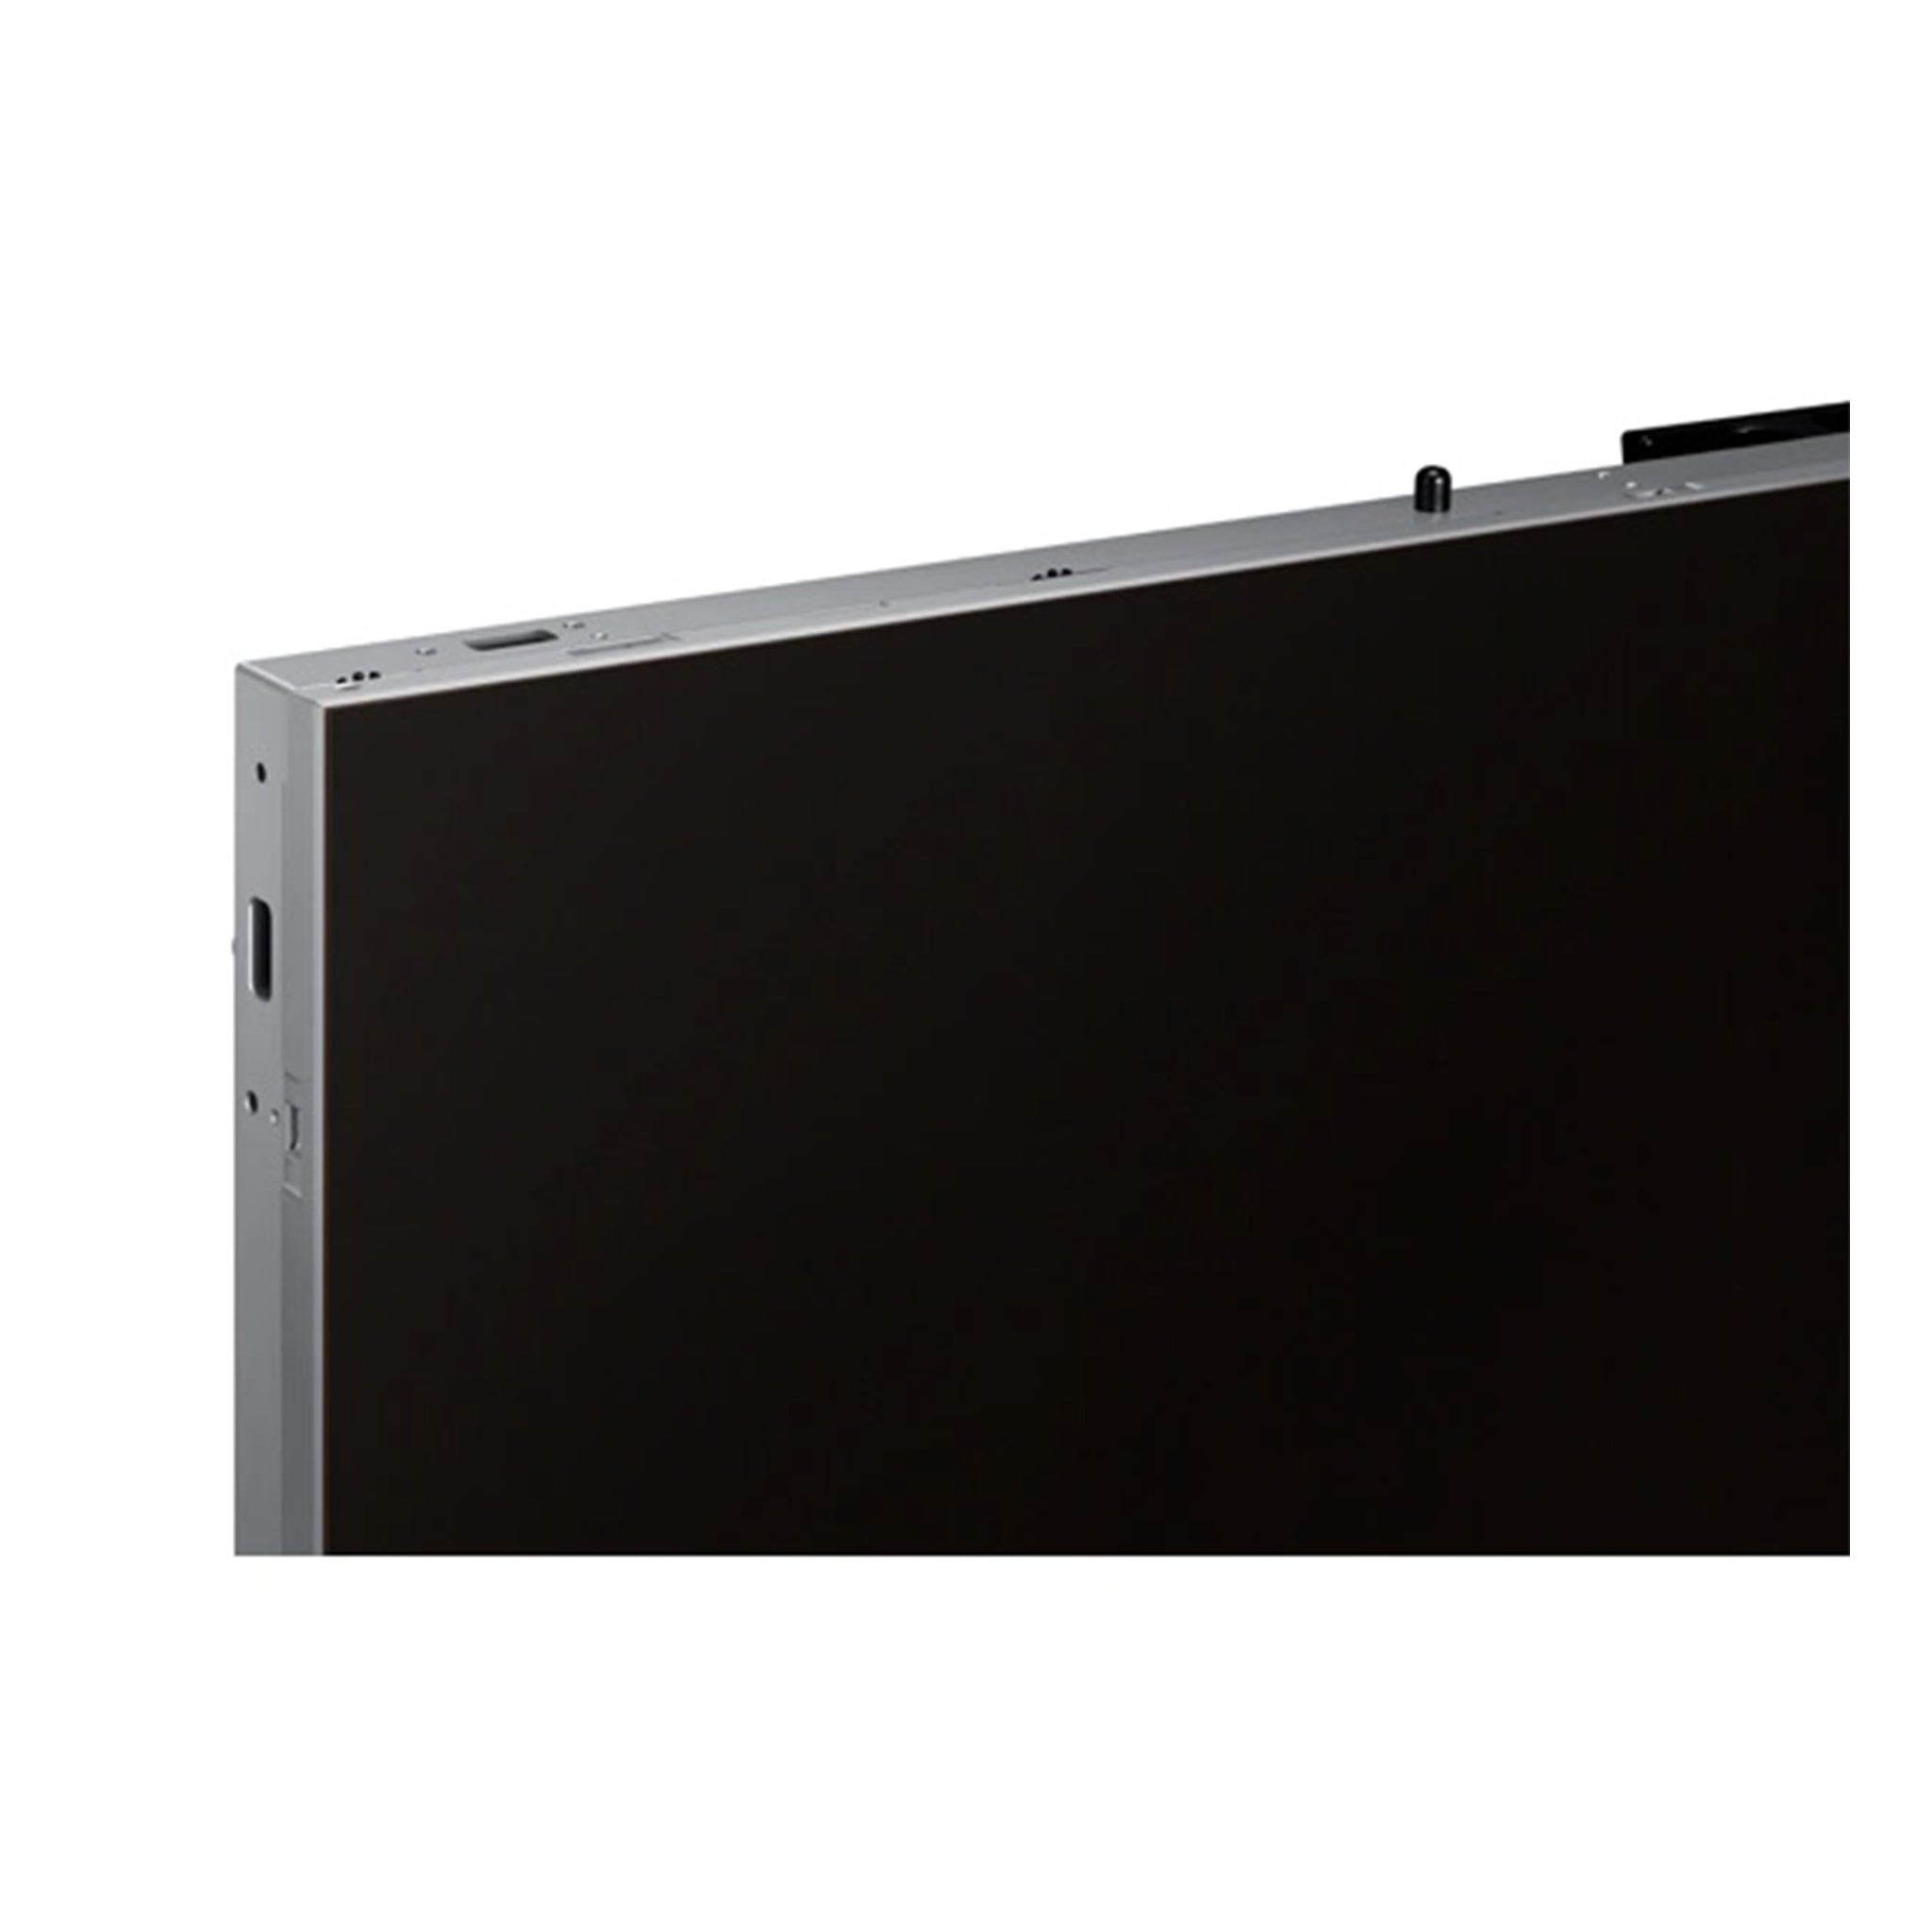 Samsung The Wall - MicroLED Video Wall Display